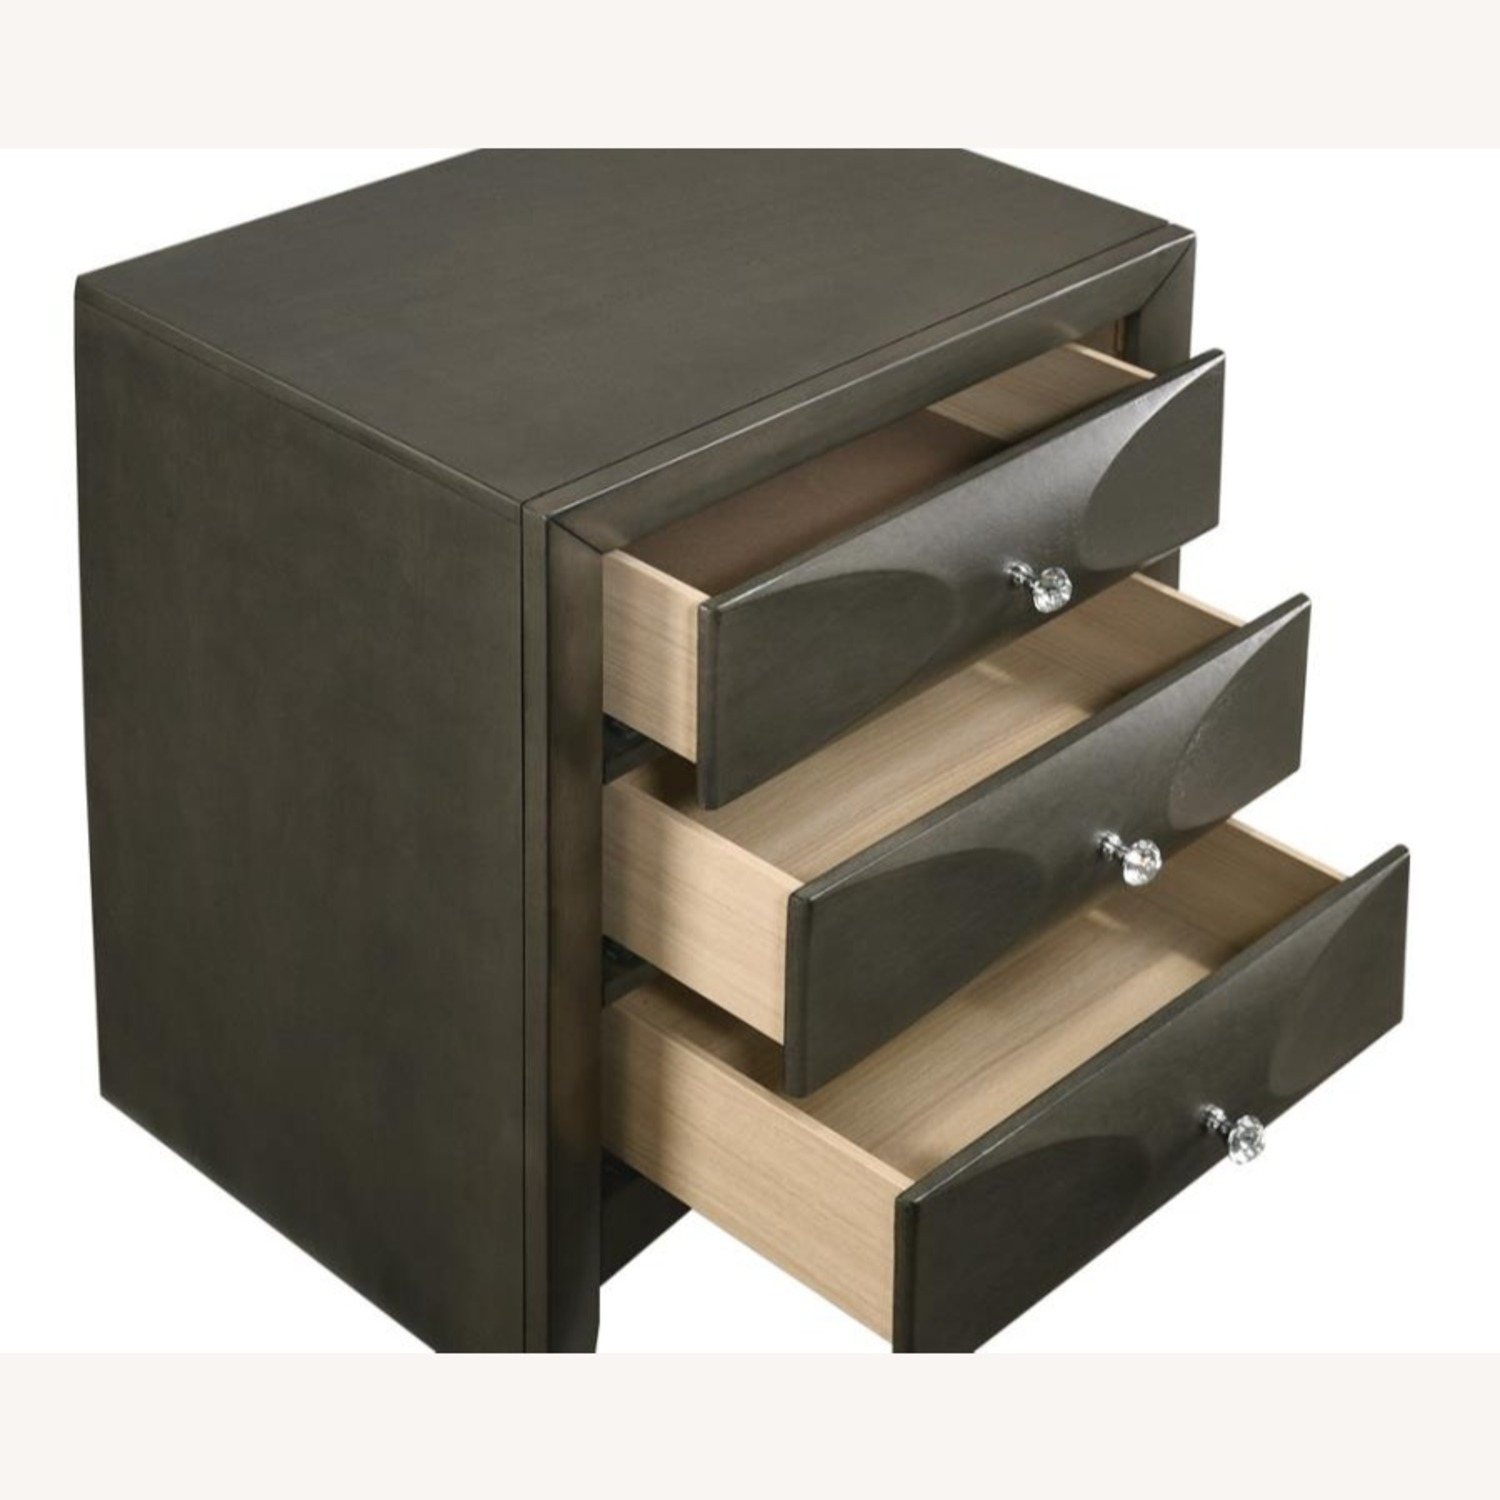 Nightstand In Mod Grey Finish W/ 3D Bow Tie Fronts - image-2